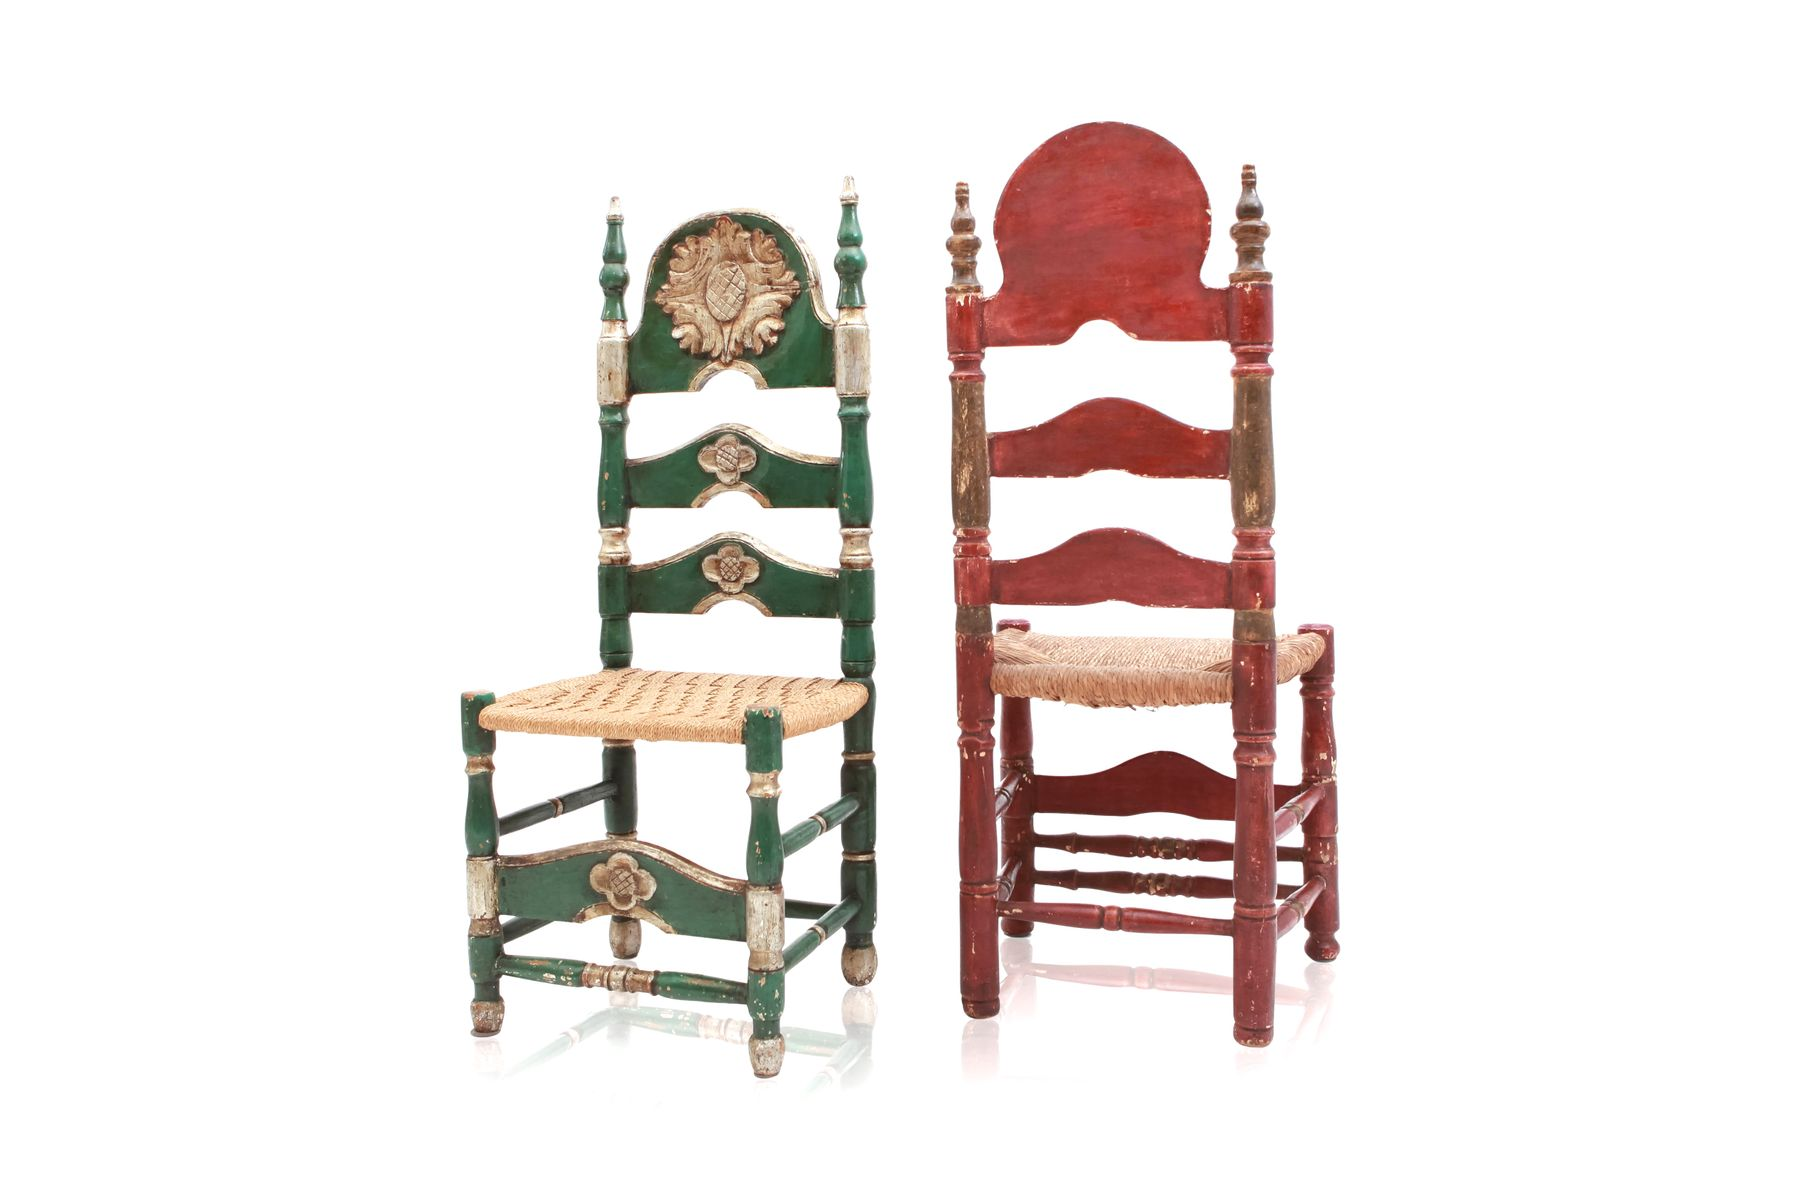 Tables greene s amish furniture part 2 - Tables Greene S Amish Furniture Part 2 Antique Spanish Green And Red Ceremonial Chairs Set Download